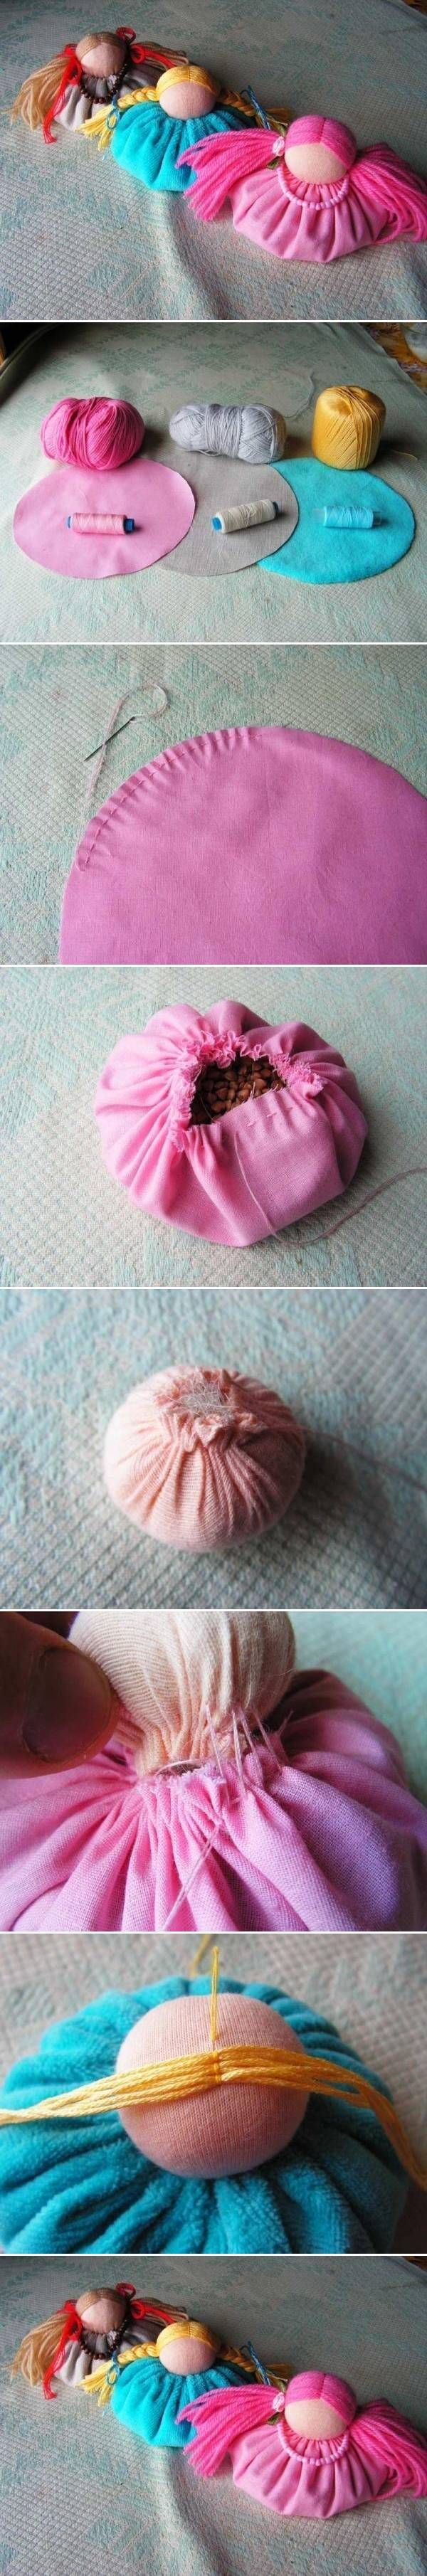 Diy cute fabric doll ornament rag dolls and soft toys pinterest diy cute fabric doll ornament solutioingenieria Images